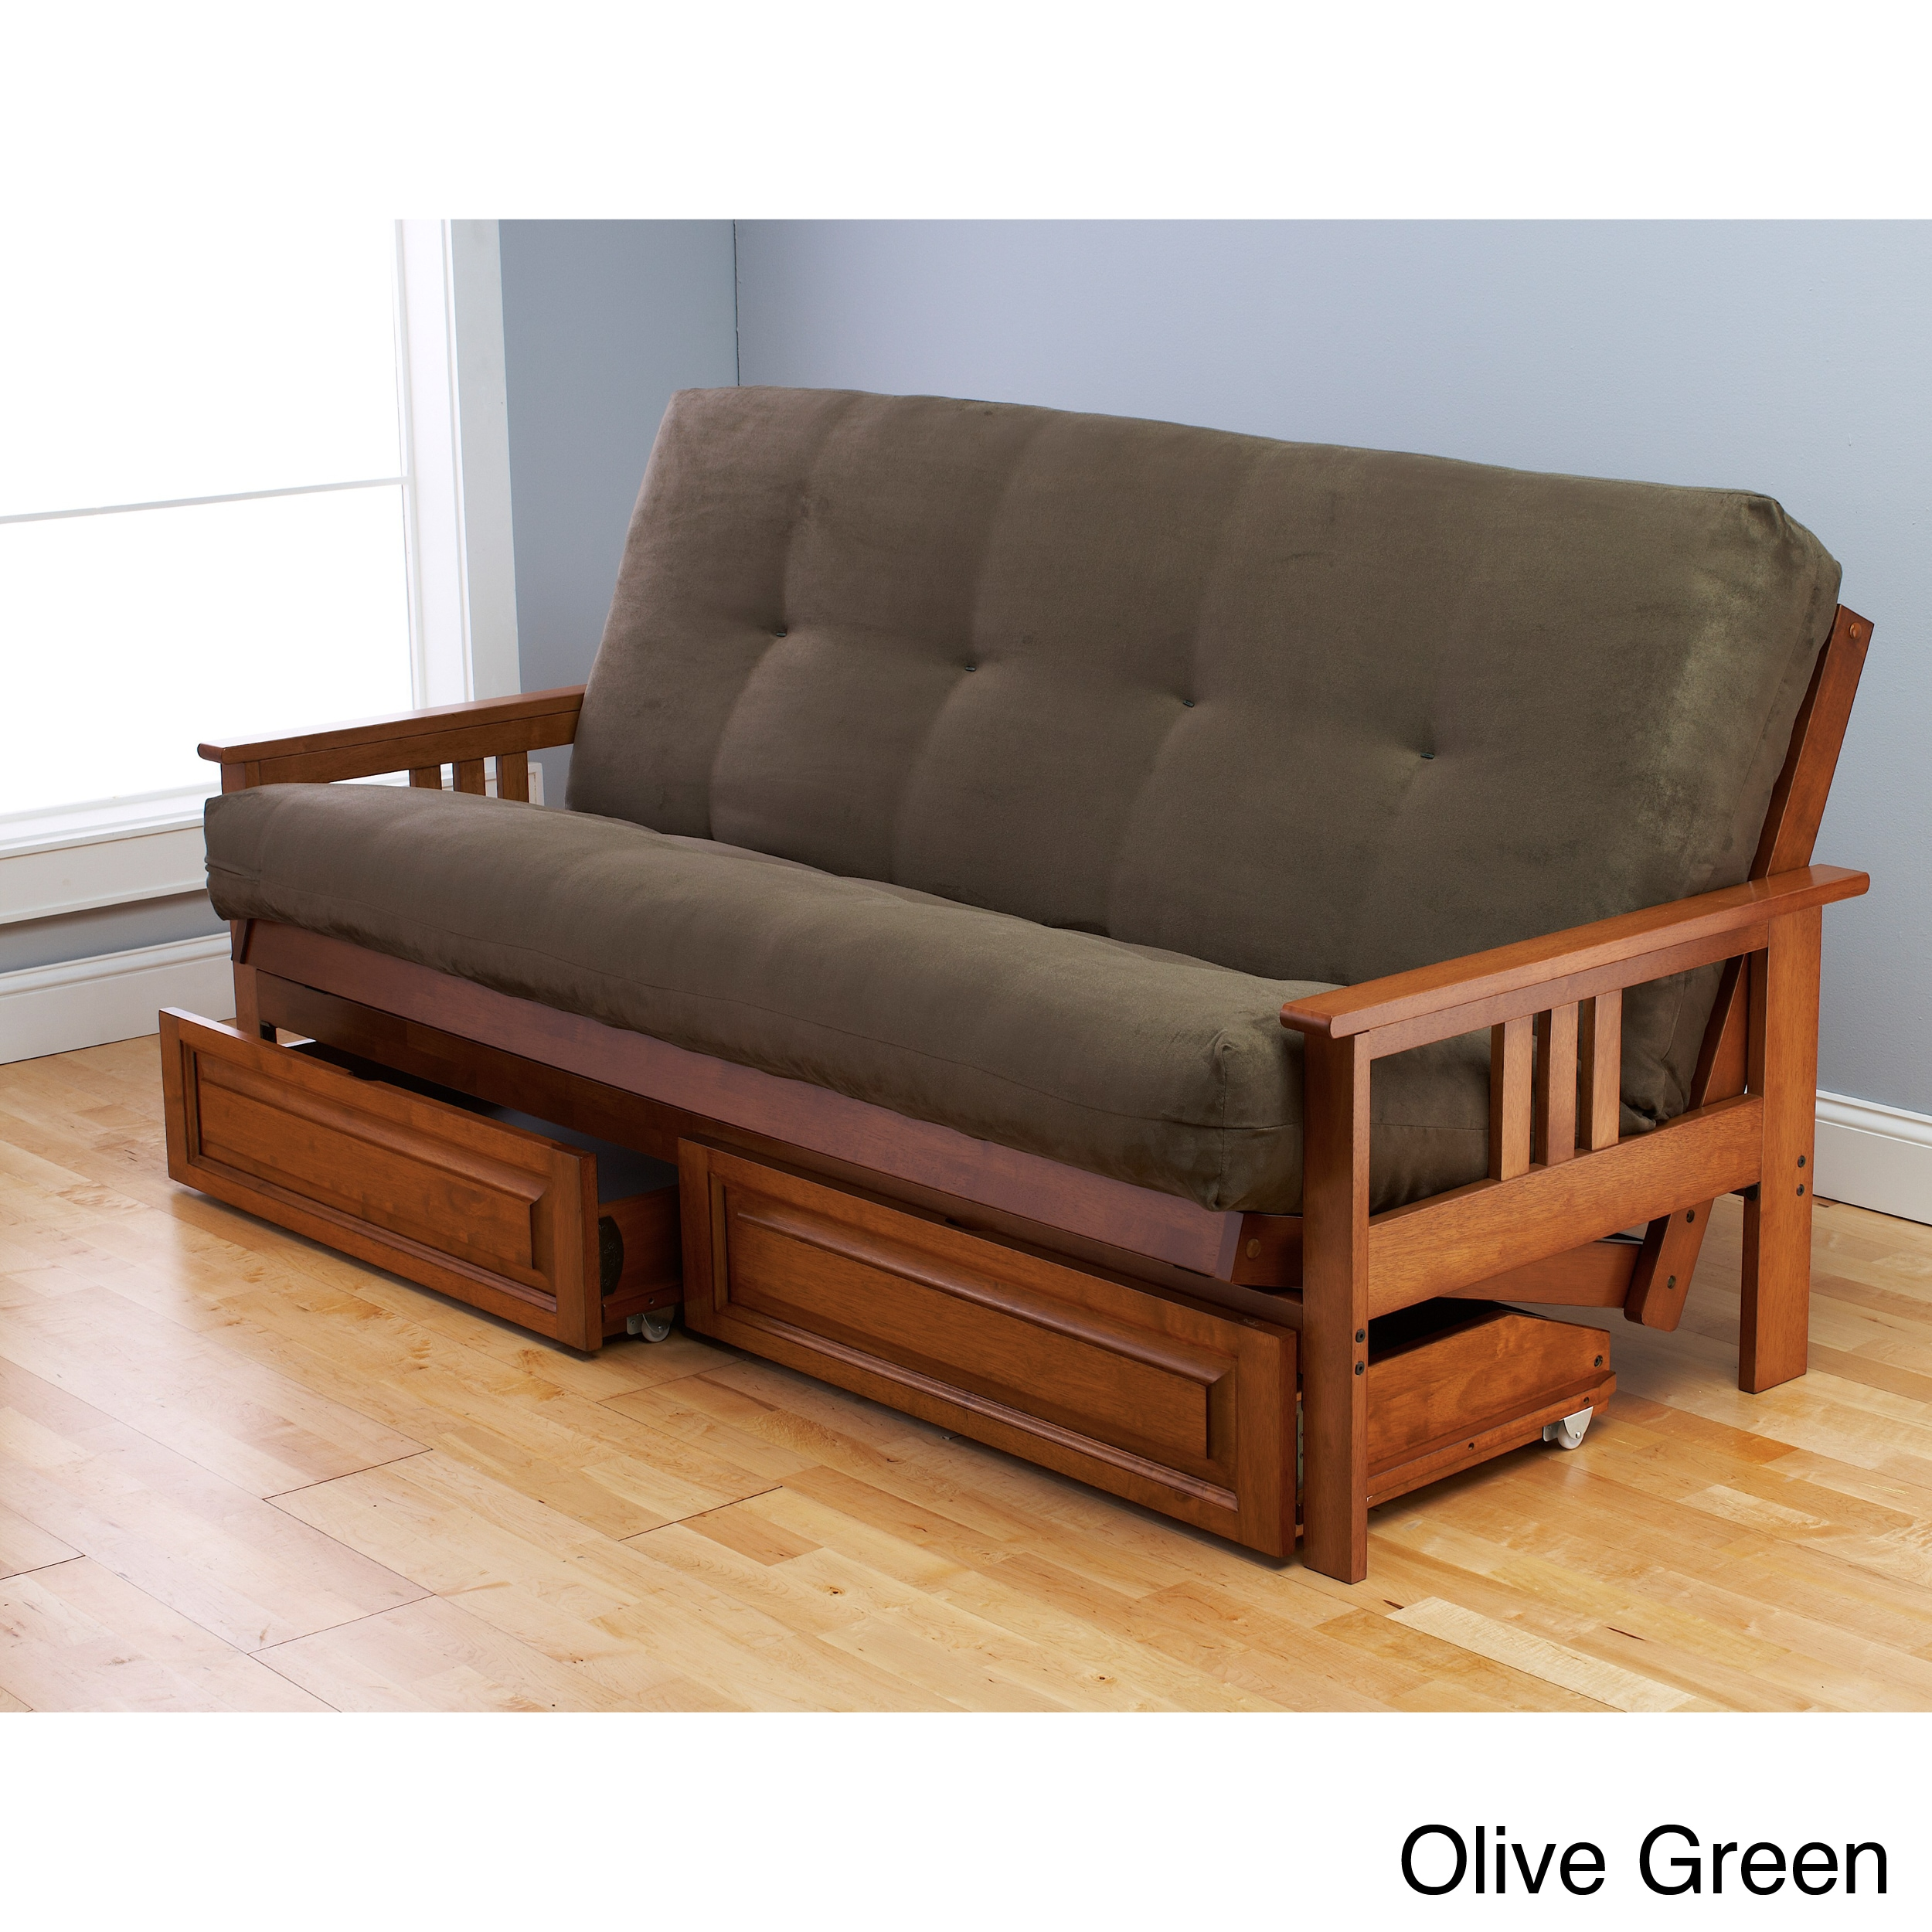 Beli Mont Multi-Flex Honey Oak Futon Set at Sears.com